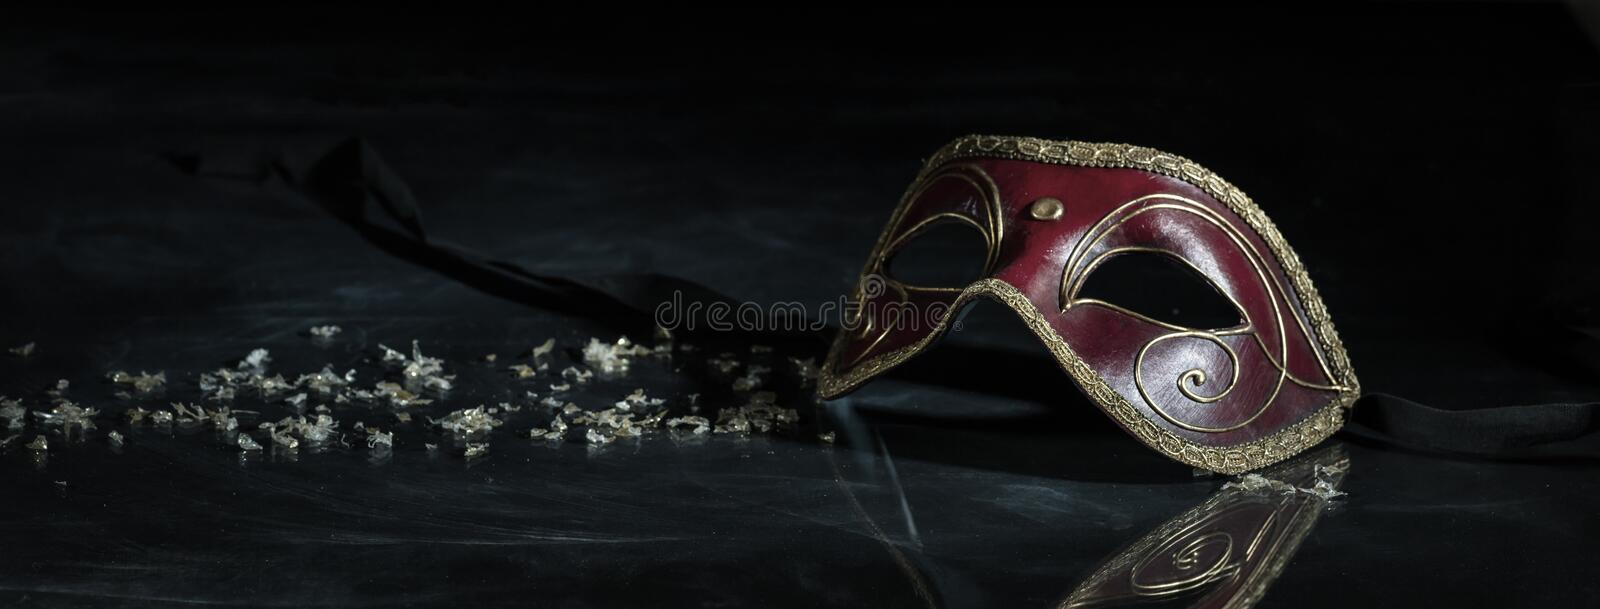 Carnival mask on black background, reflections, banner. Carnival time. Venetian mask red and gold color on black background, reflections, banner stock image